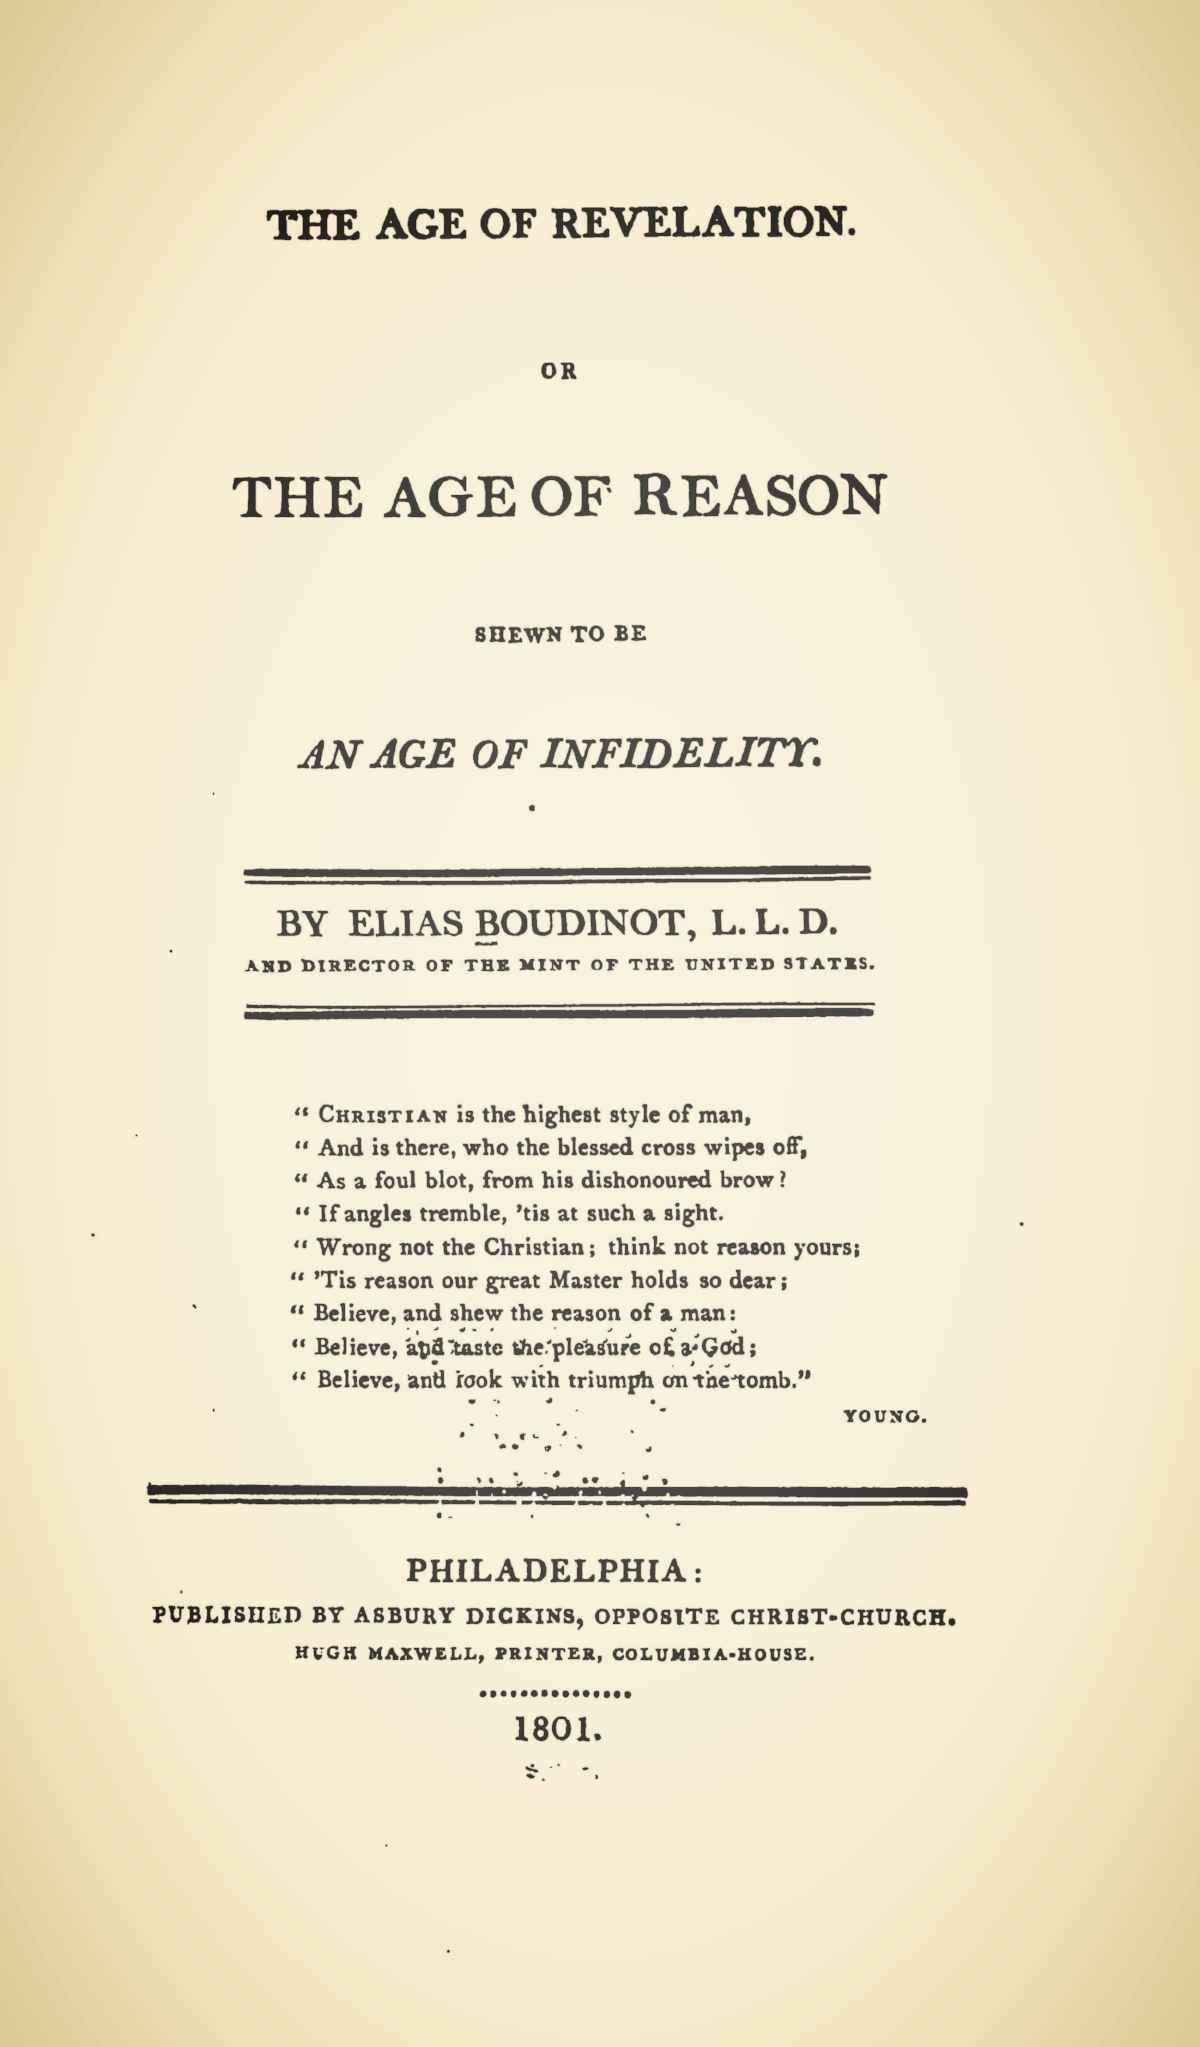 Boudinot, Elias IV, The Age of Revelation, or, The Age of Reason Shewn to be an Age of Infidelity Title Page.jpg